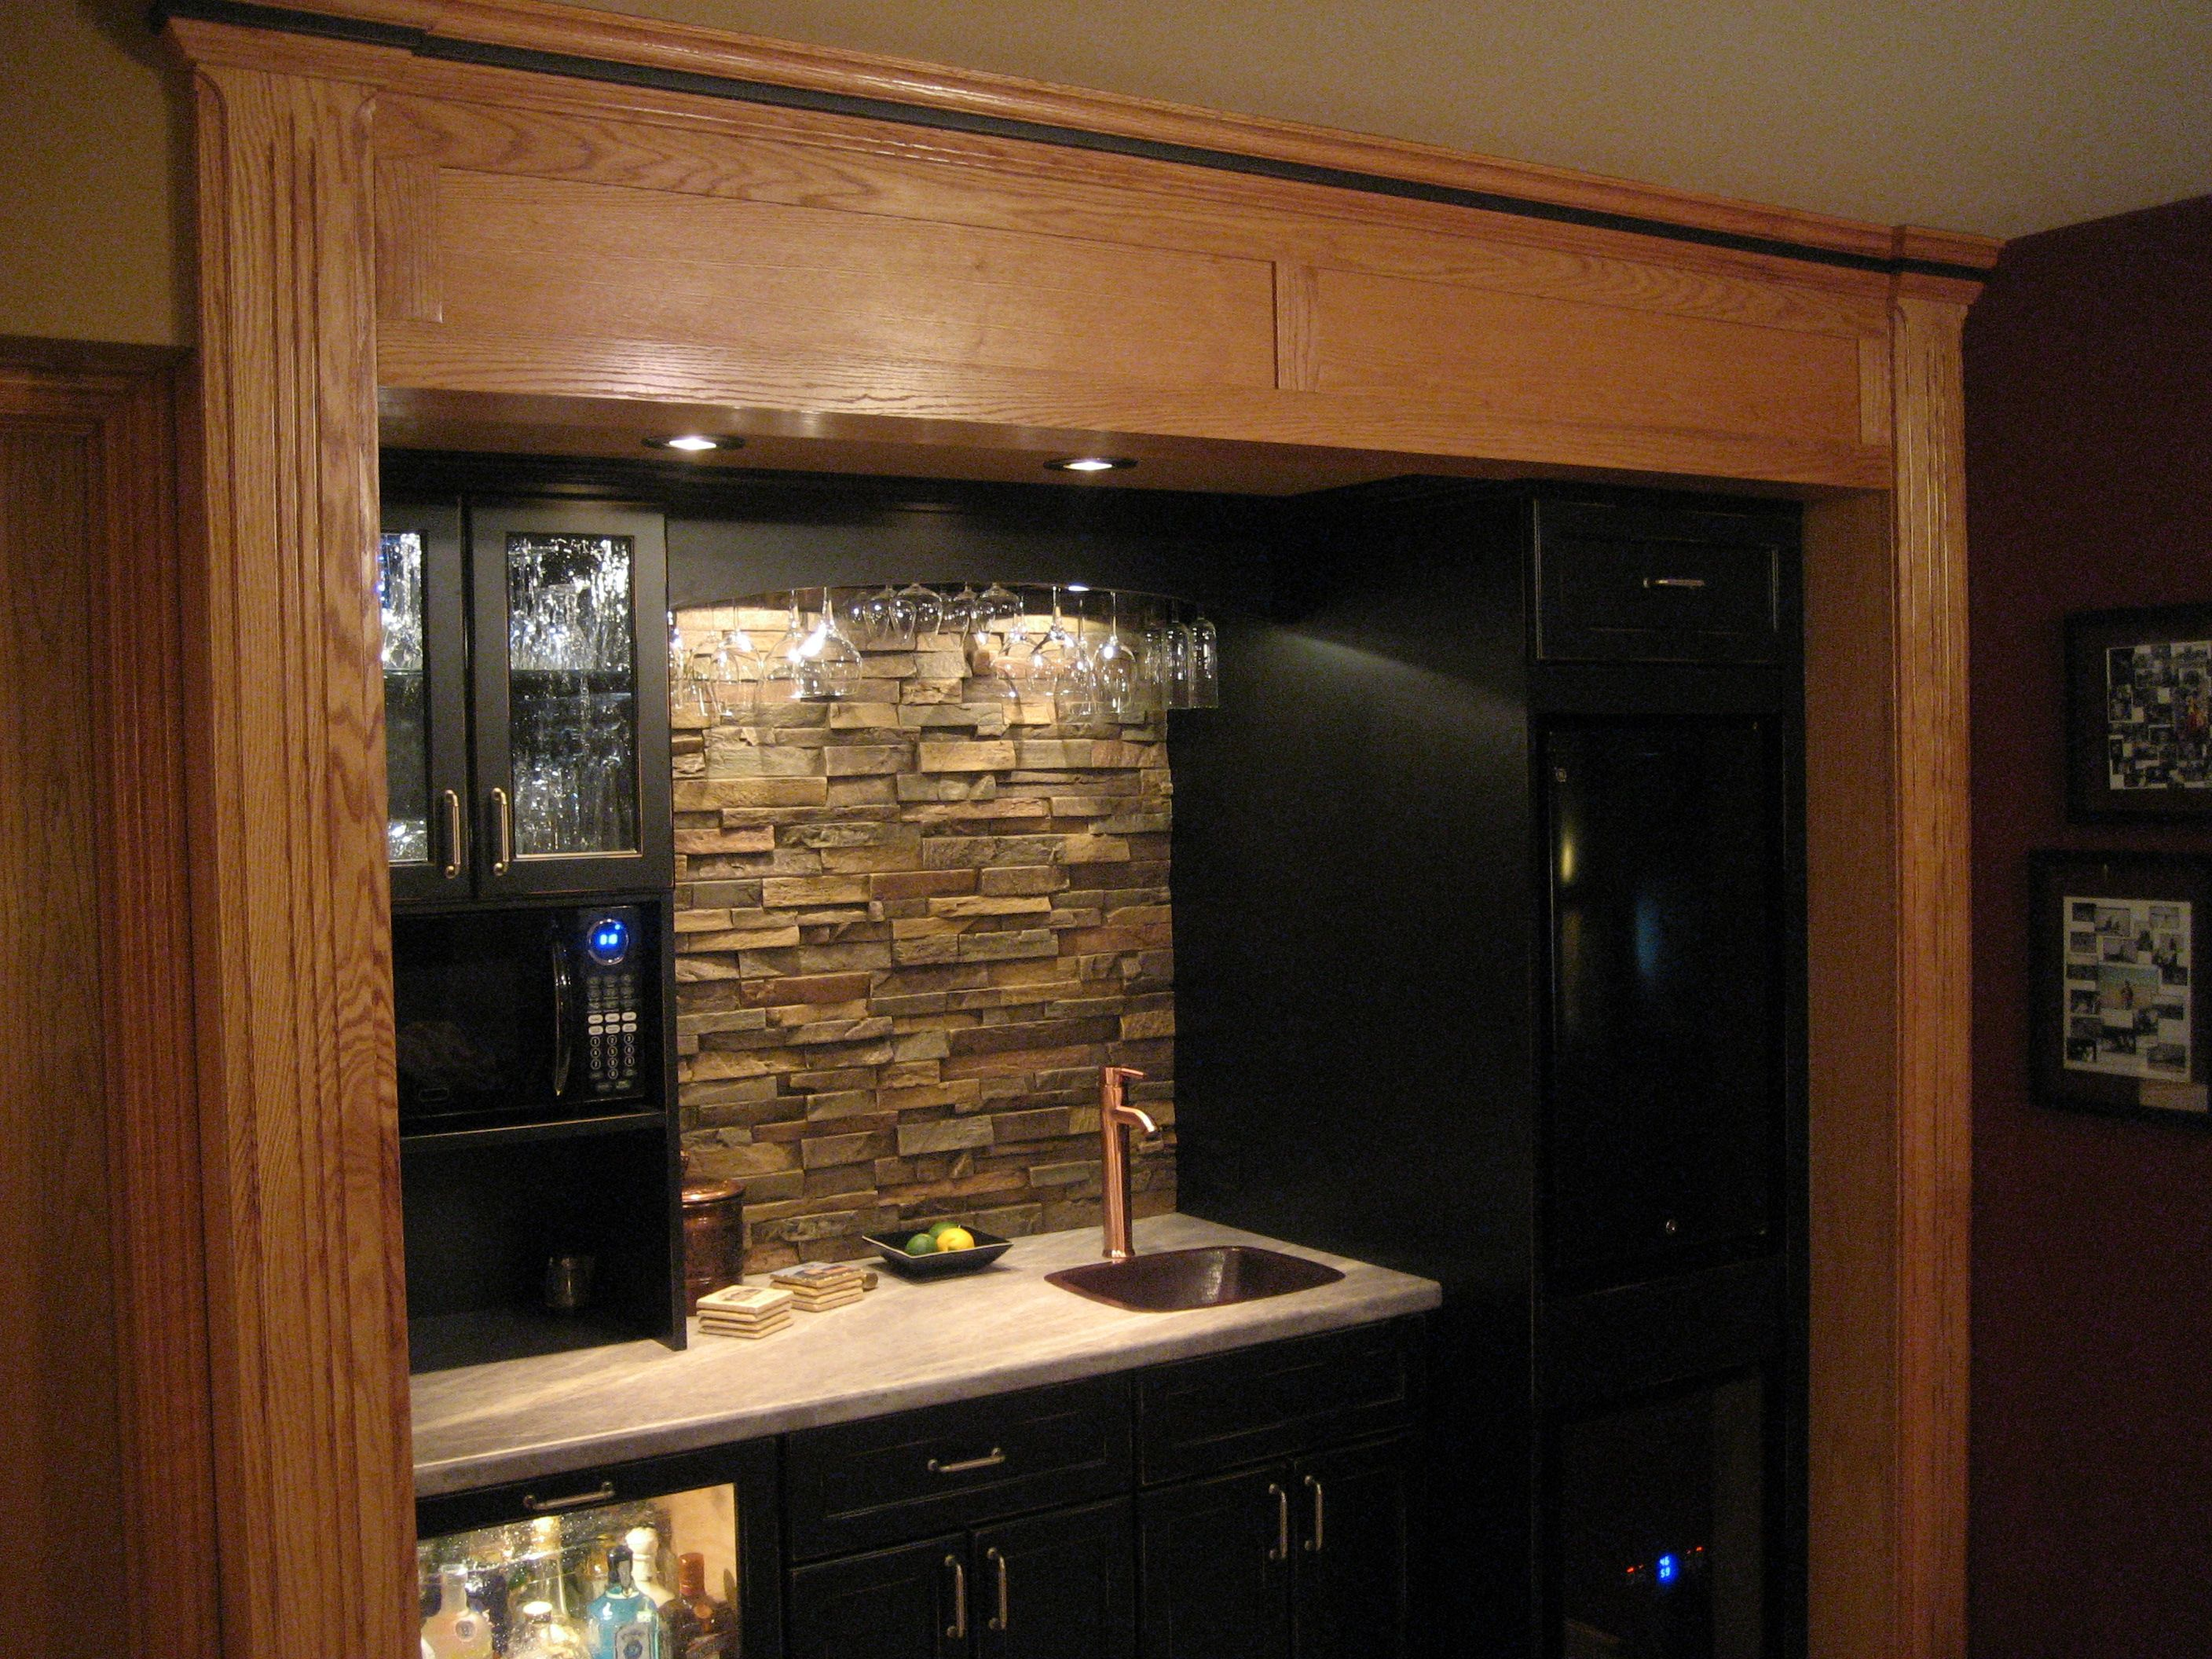 stone backsplash ideas for kitchen adding stone veneer into the kitchen design was a great - Stone Kitchen Backsplash Ideas